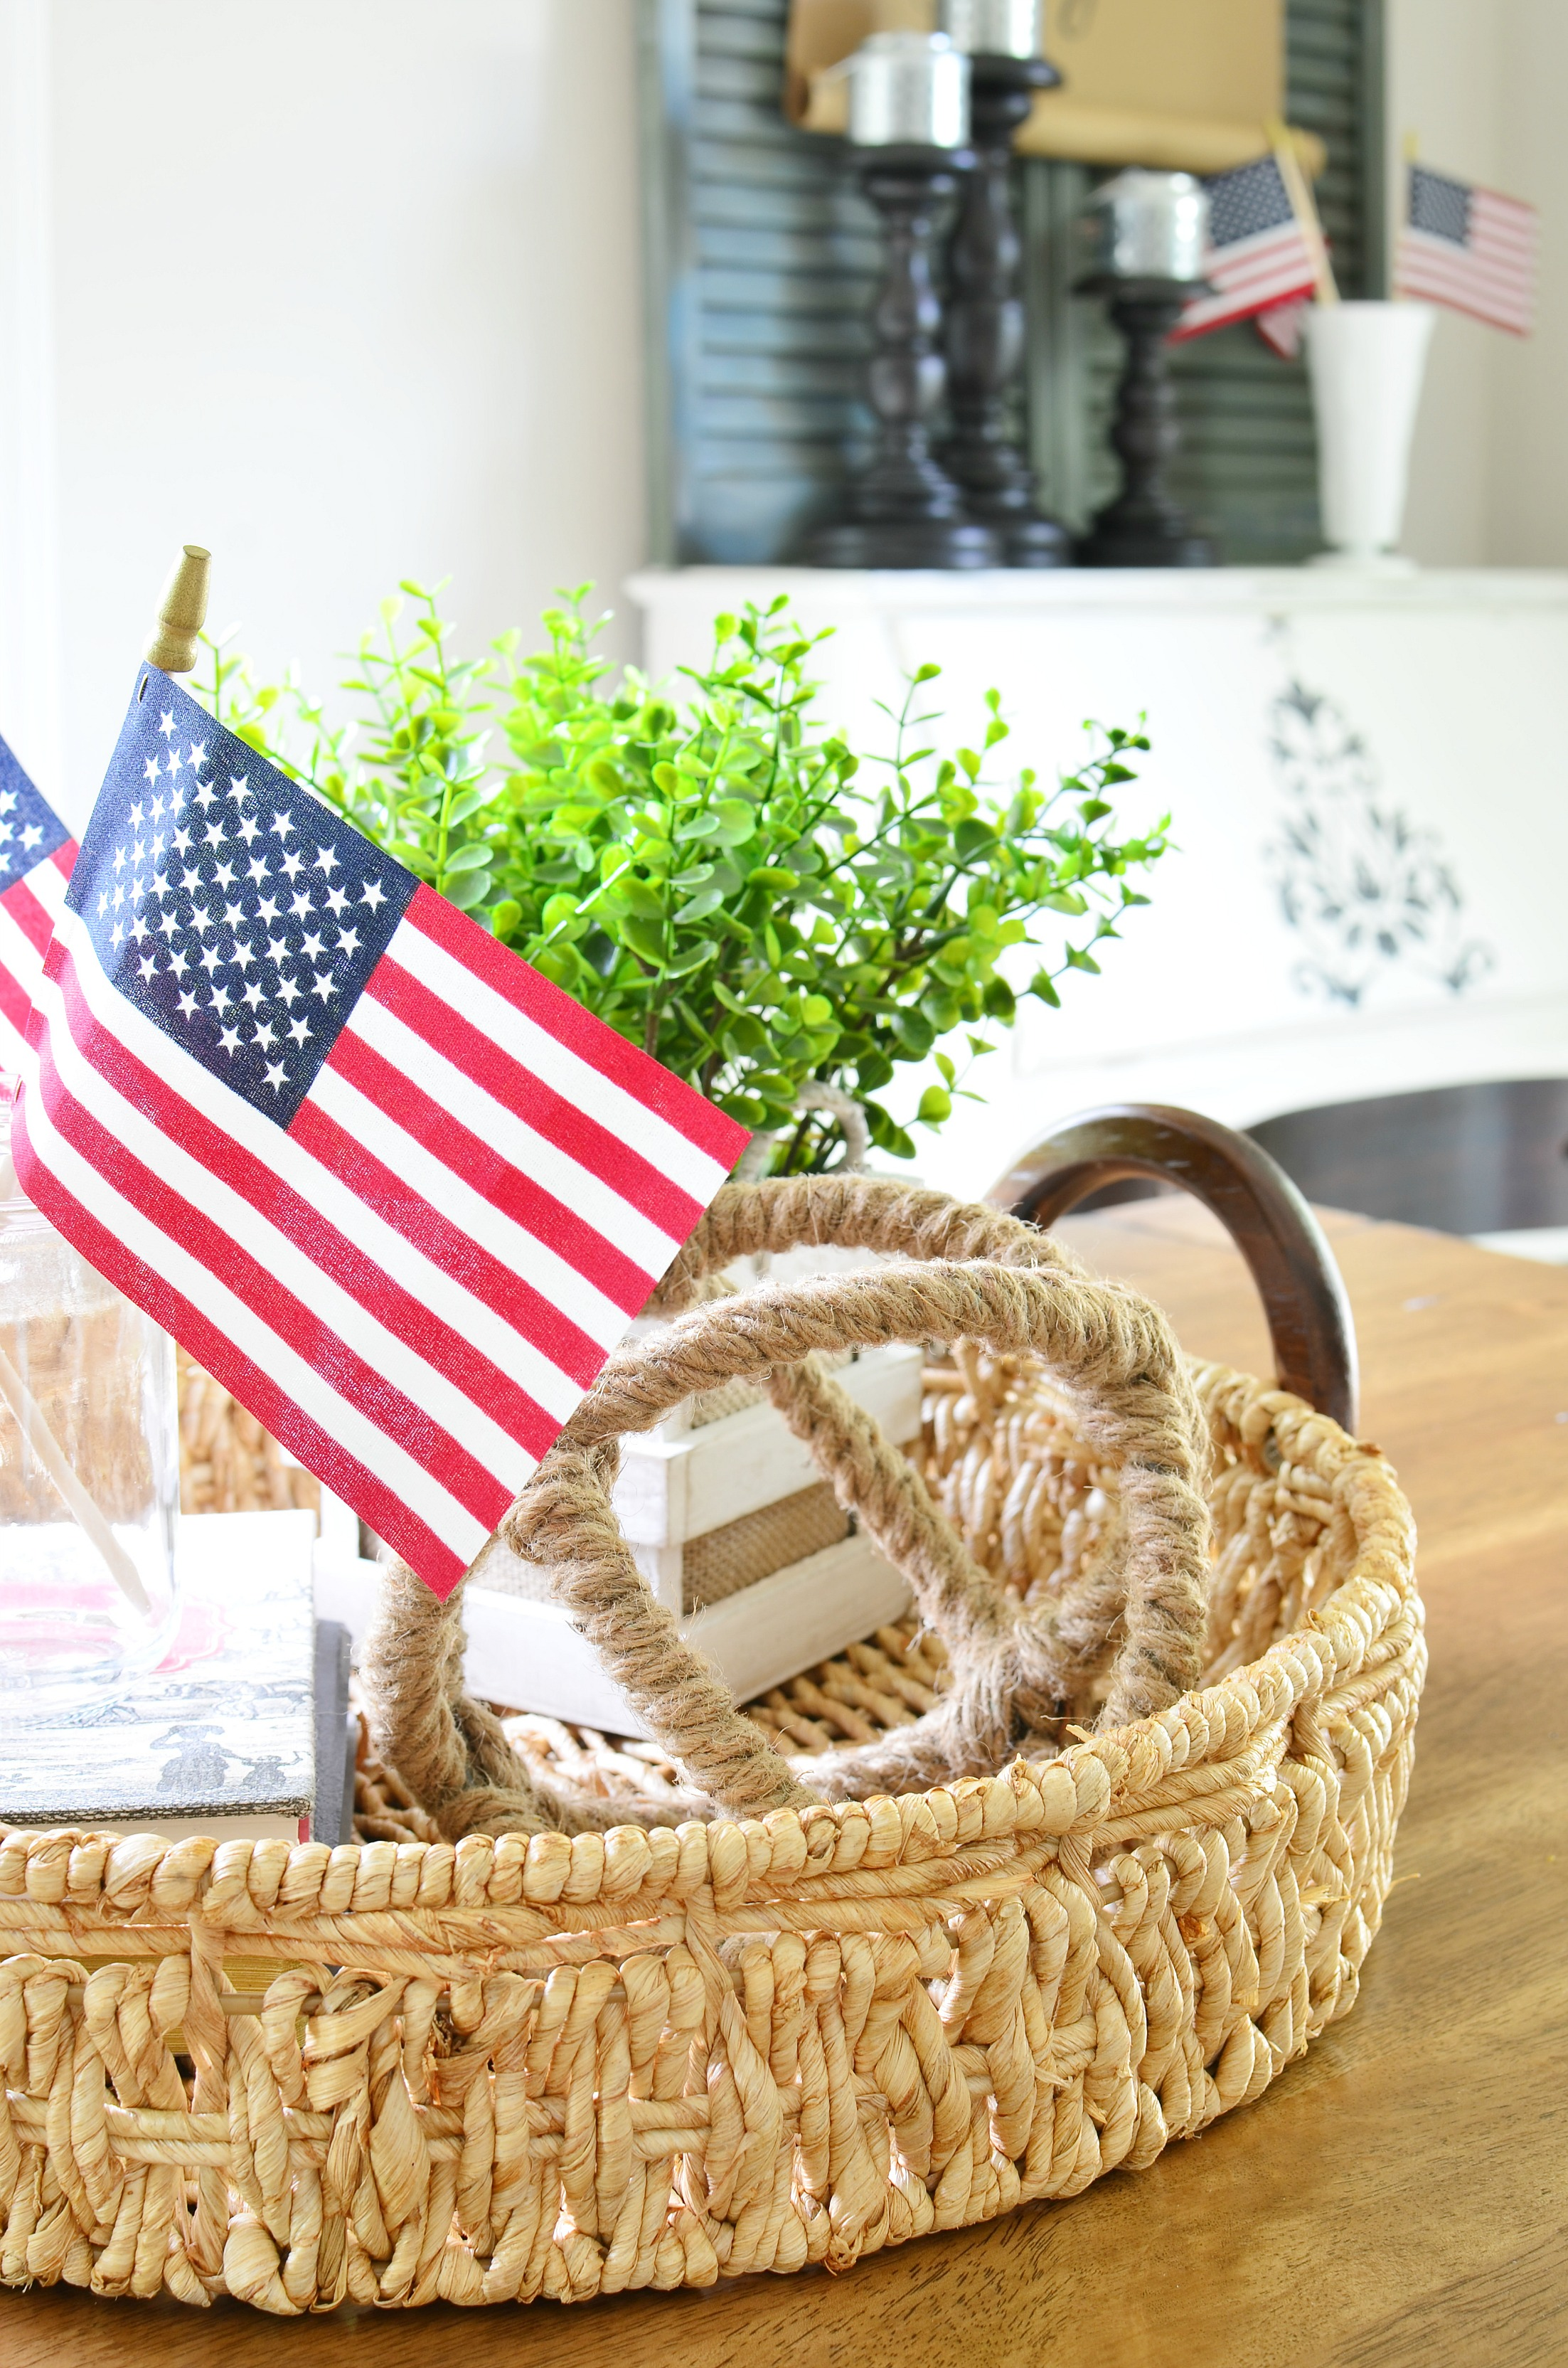 Five Simple Ways To Add Patriotic Decor To Your Home | Adams and Elm